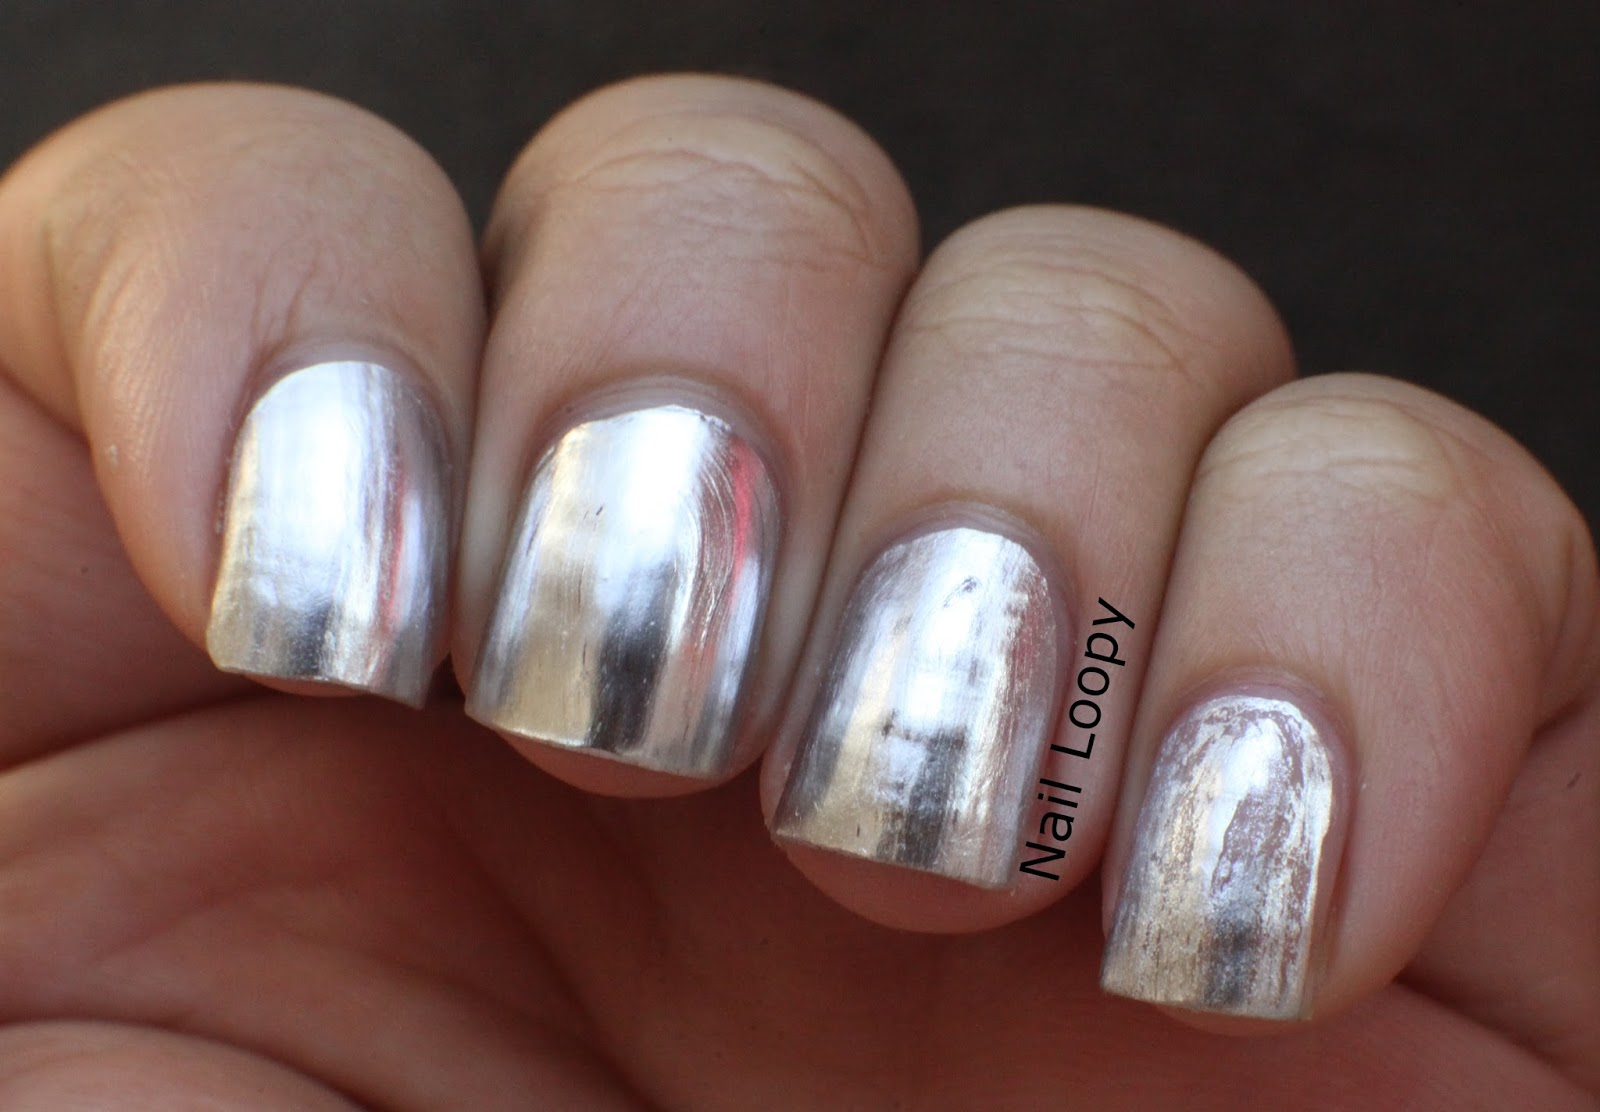 nail loopy: WHICH BASECOAT TO USE WITH OPI PUSH & SHOVE?